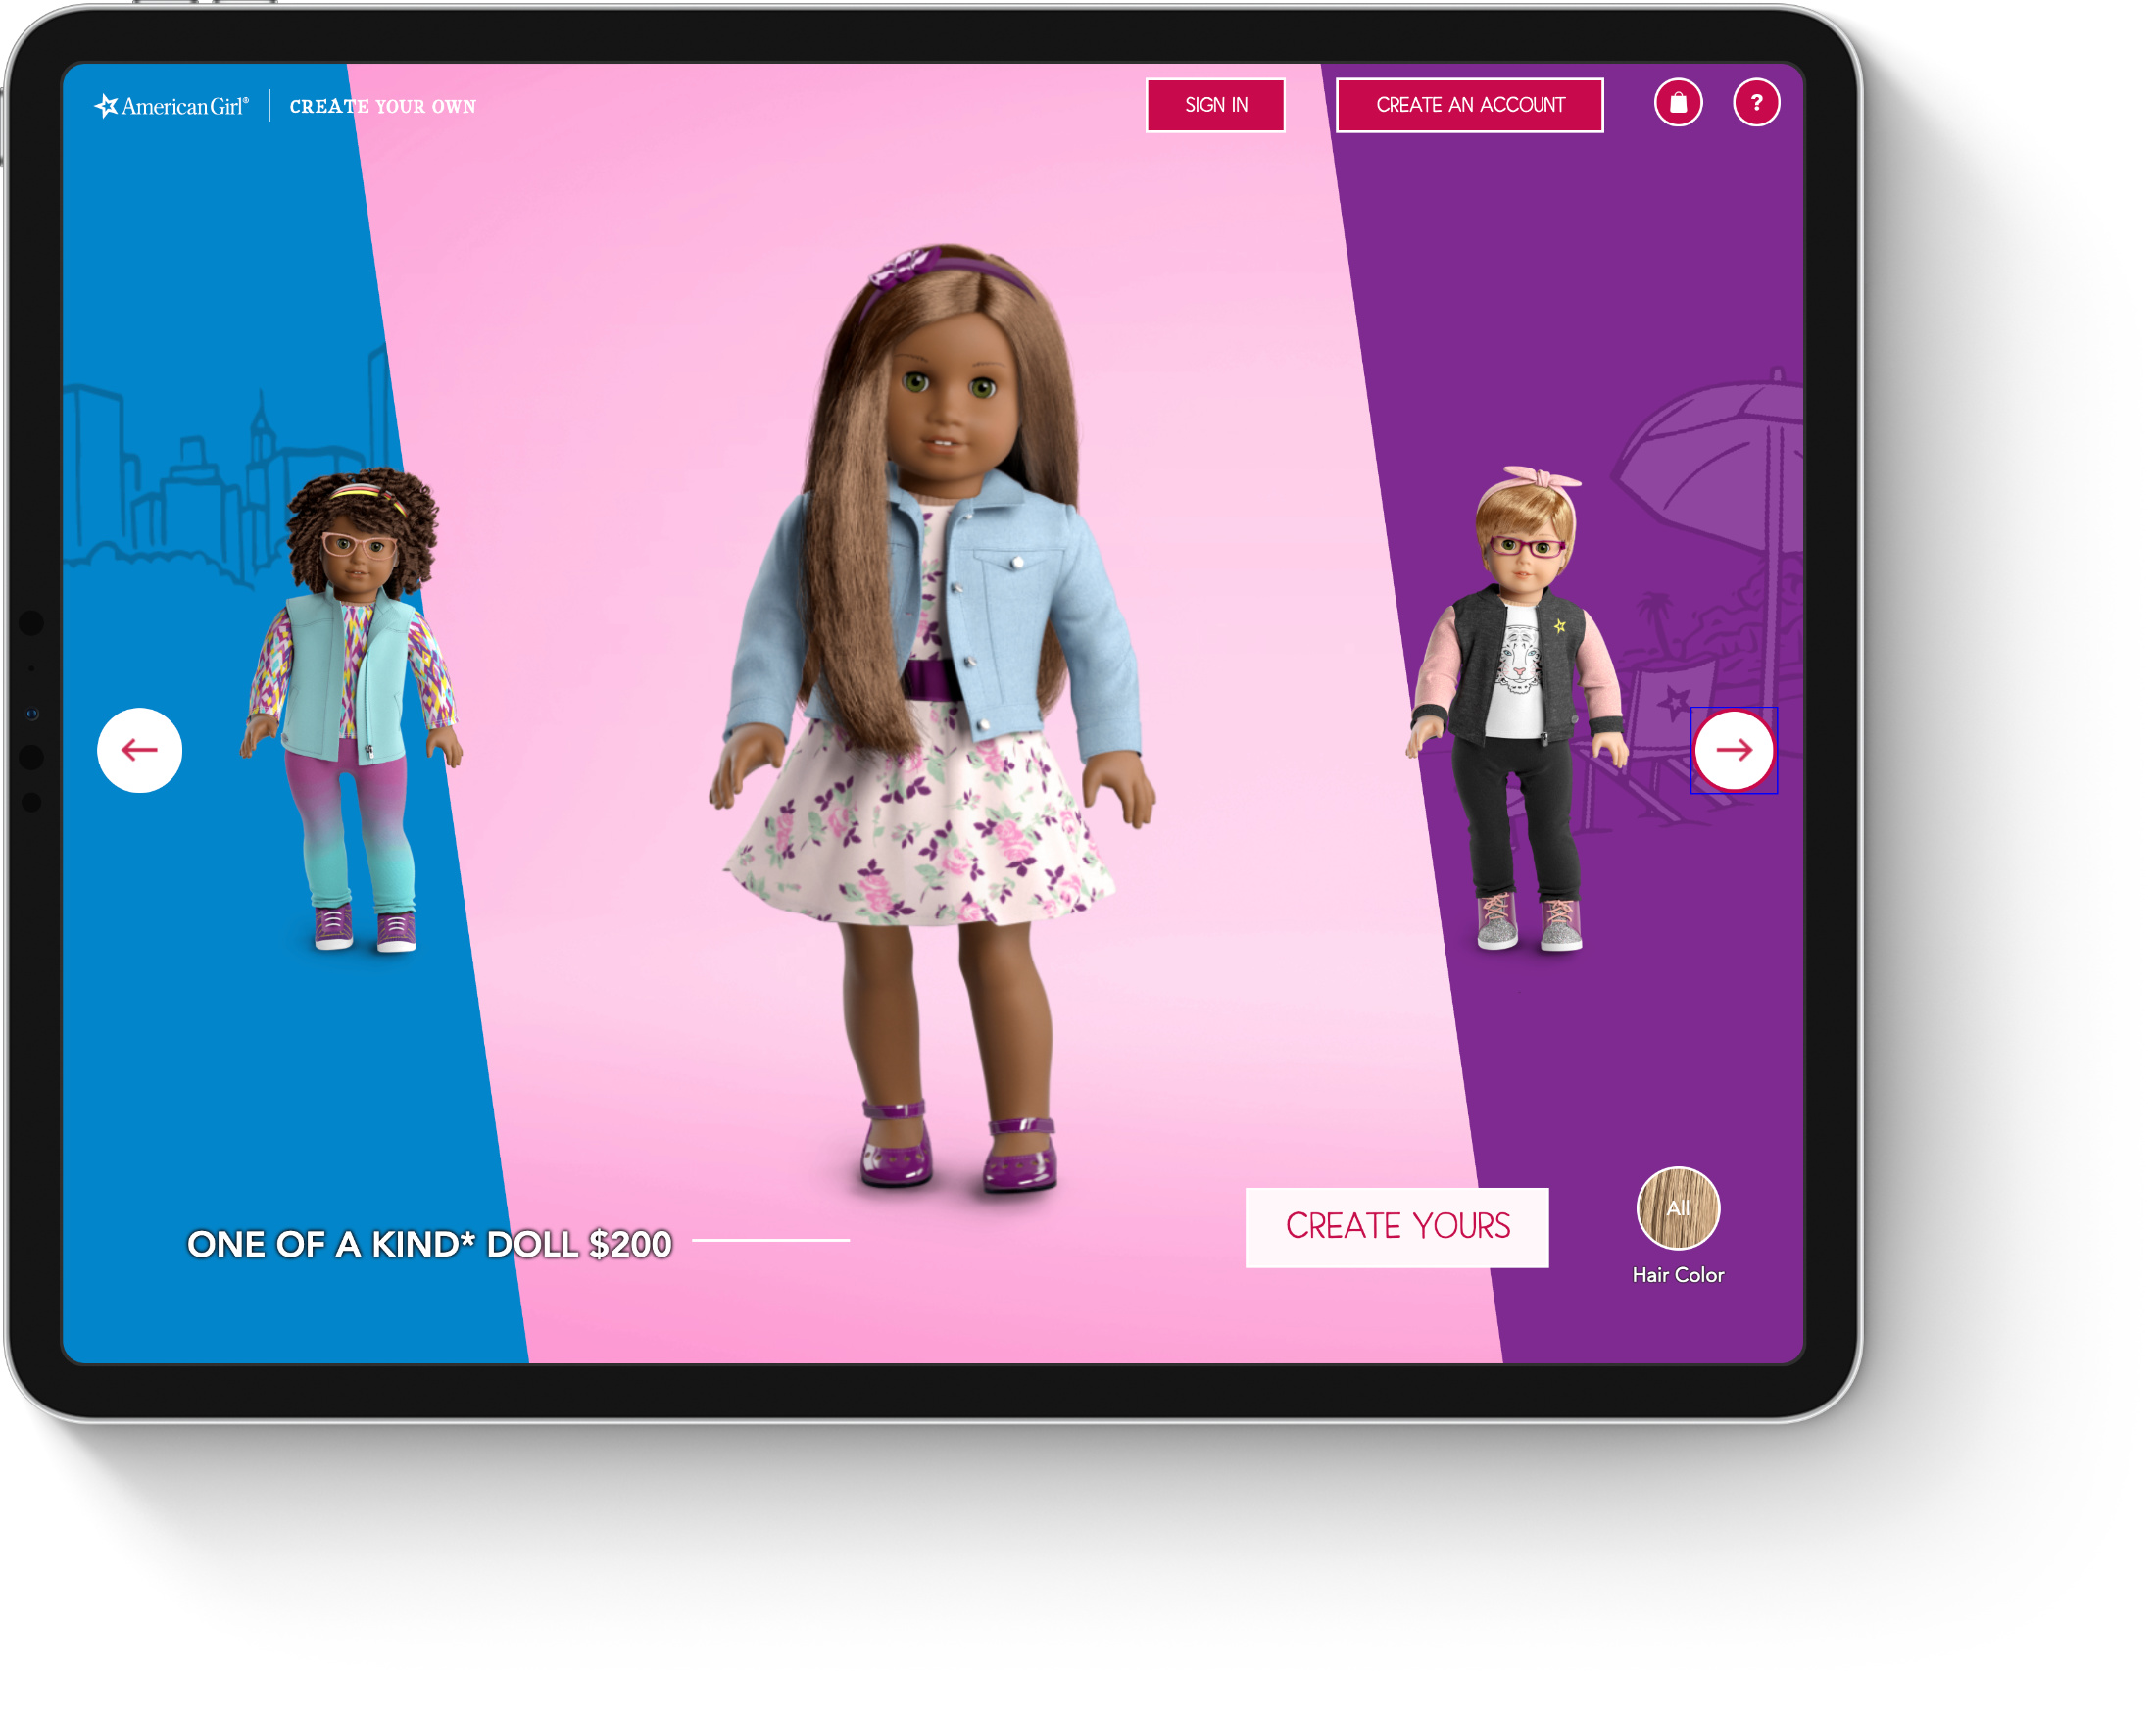 Tablet displaying landing page of American girl create and customize a doll login page